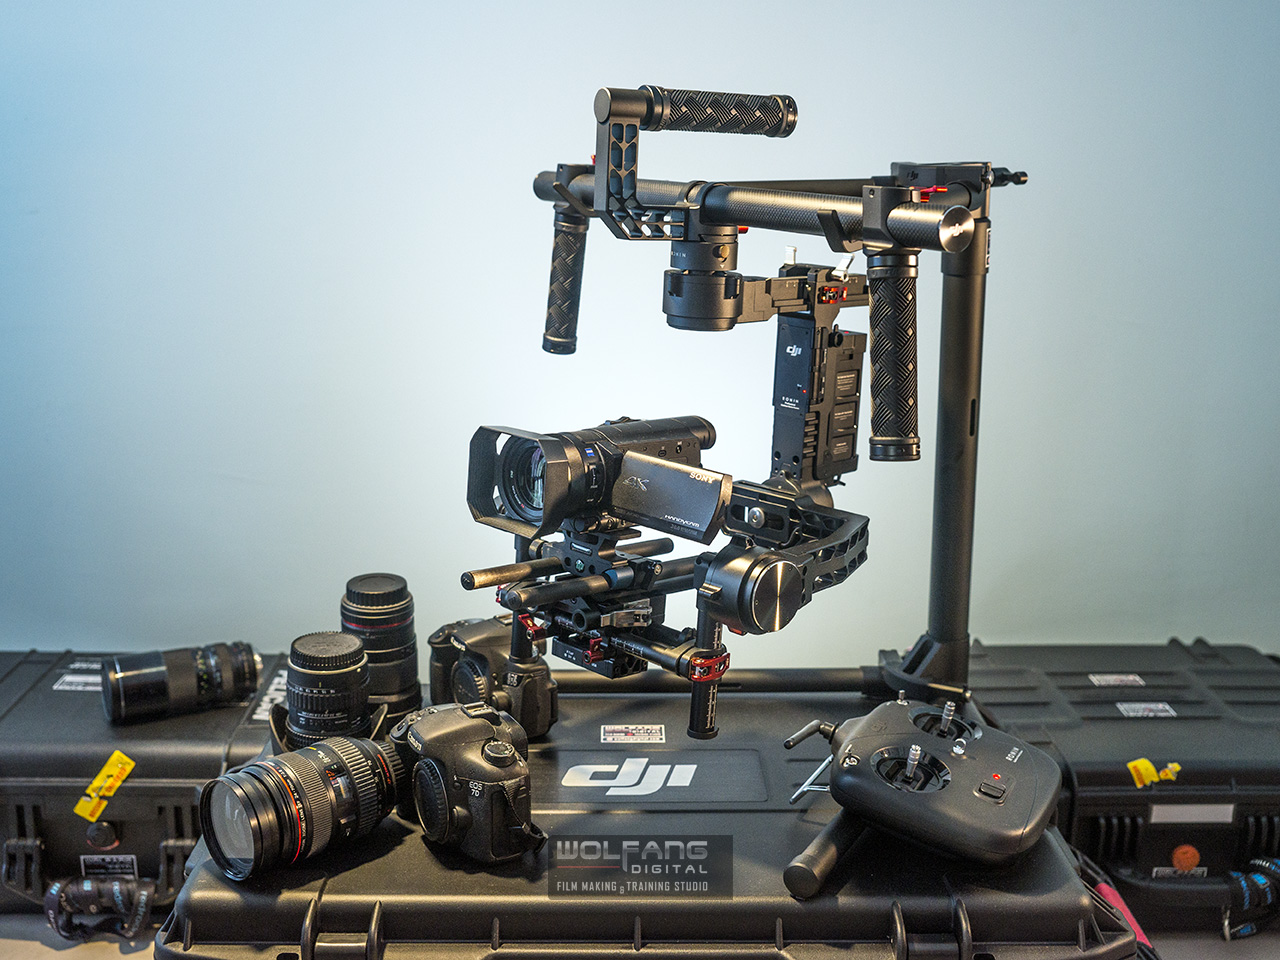 WolFang Digital offers DJI Ronin 3-Axis Stabilized Handheld Gimbal System with Certified Steadicam Operator